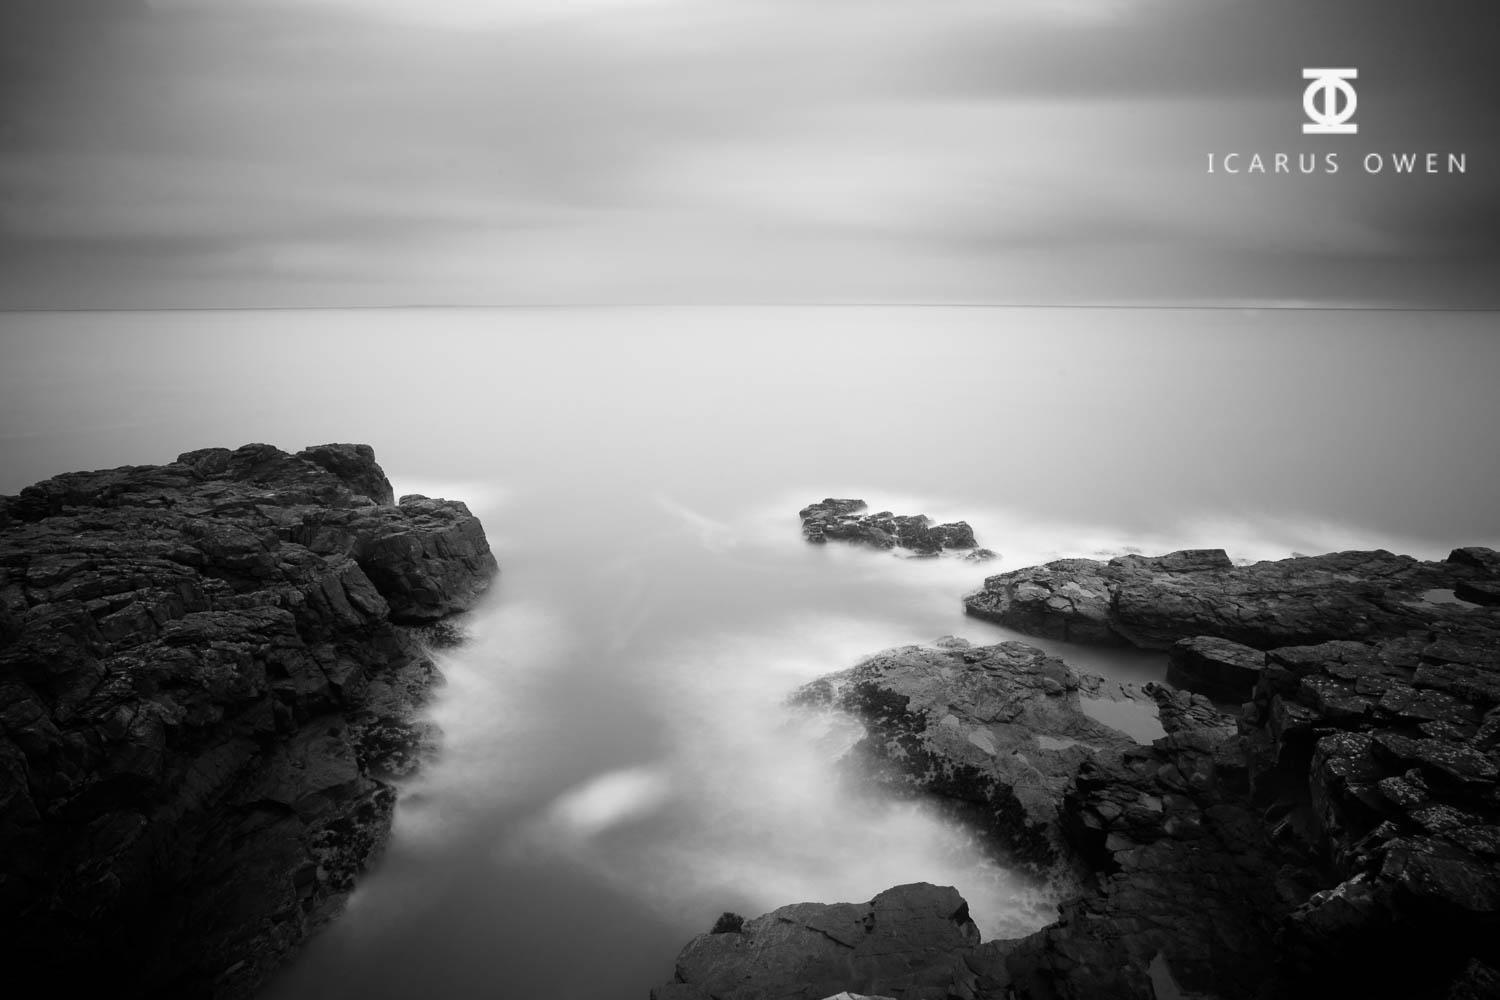 Aberdden coast, monochrome seascape.